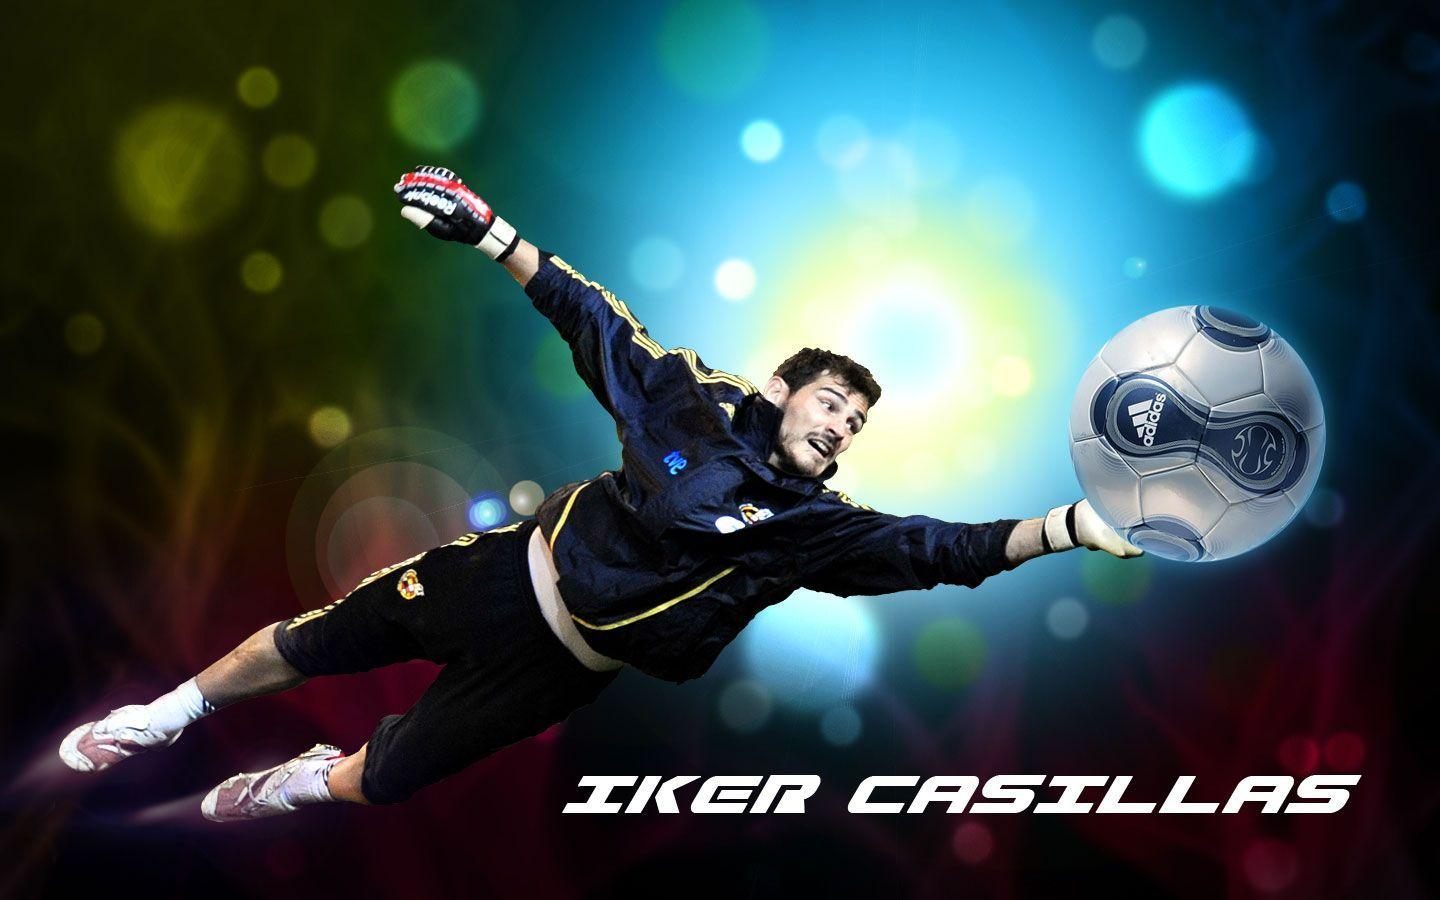 Casillas Wallpapers | amxxcs.ru